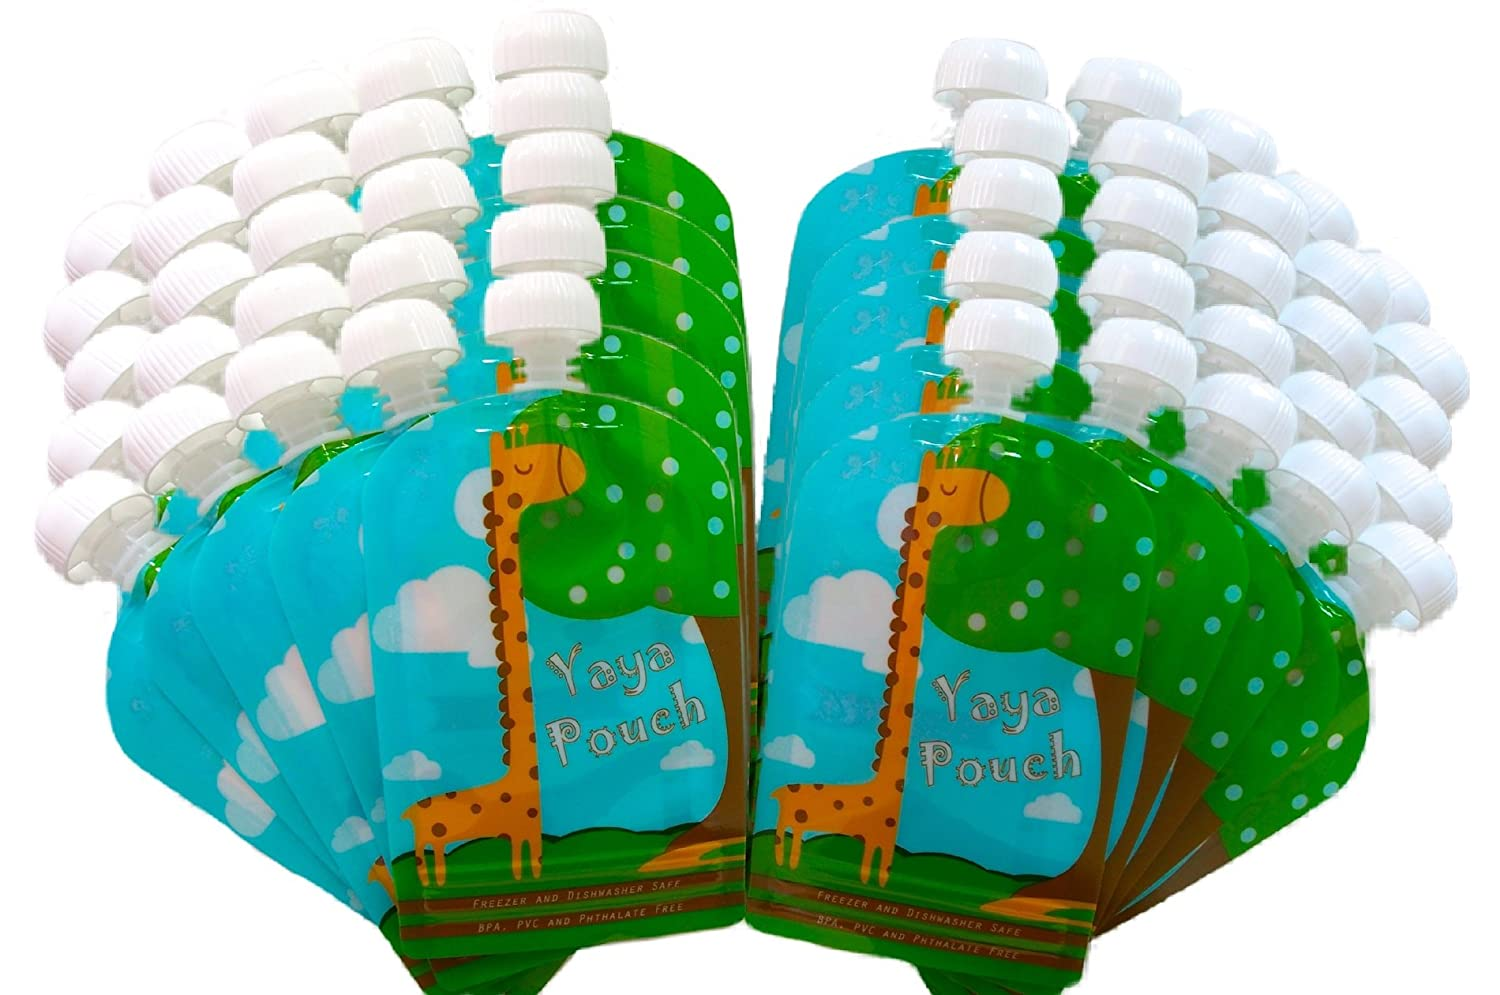 Reusable Food Pouch (50 Pack) 5 oz Squeeze Pouches Refillable BPA Free Pouch for Baby and Toddler